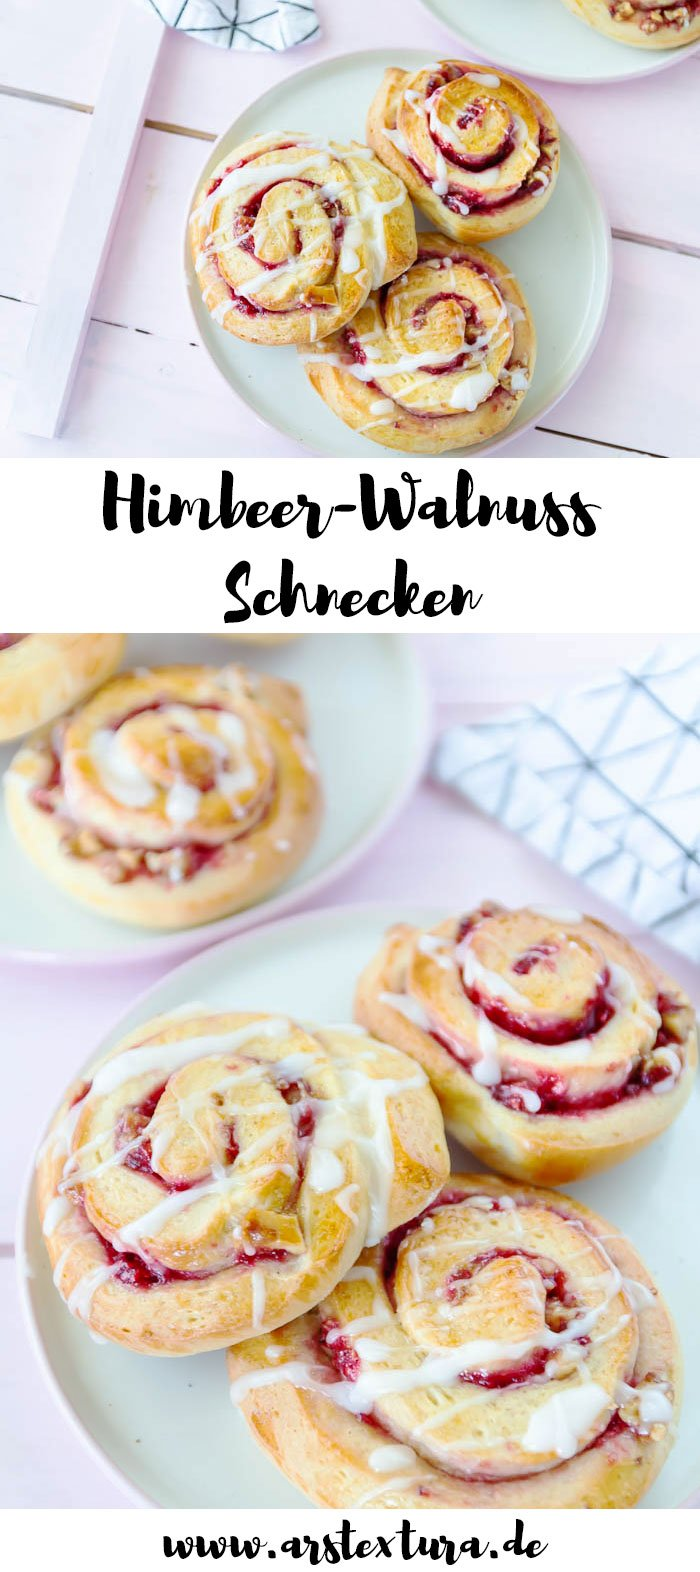 Himbeer-Walnuss Schnecken backen